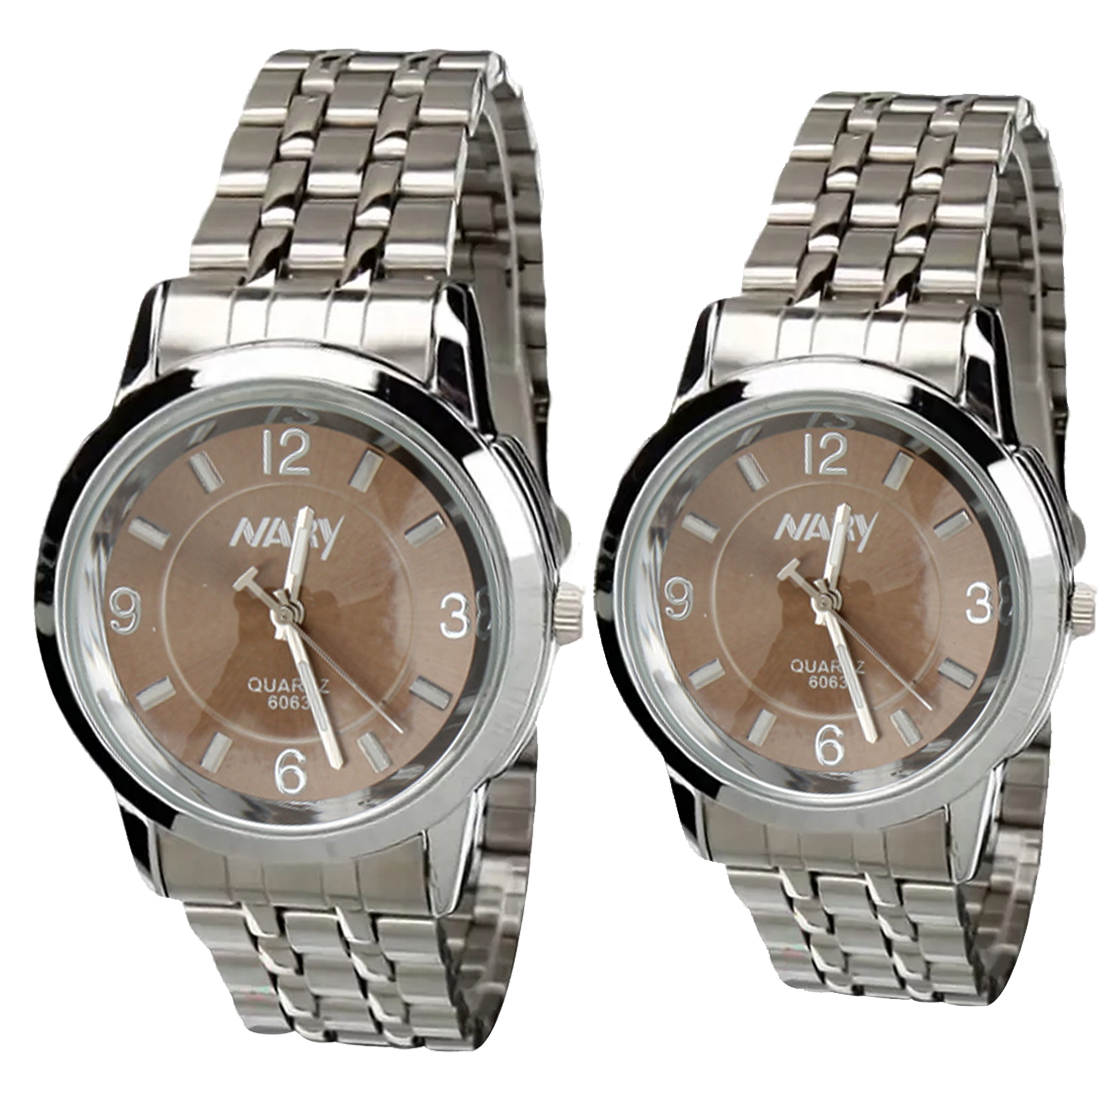 NARY Lovers Silver/Brown Stainless Steel Strap Watch 6063 product preview, discount at cheapest price